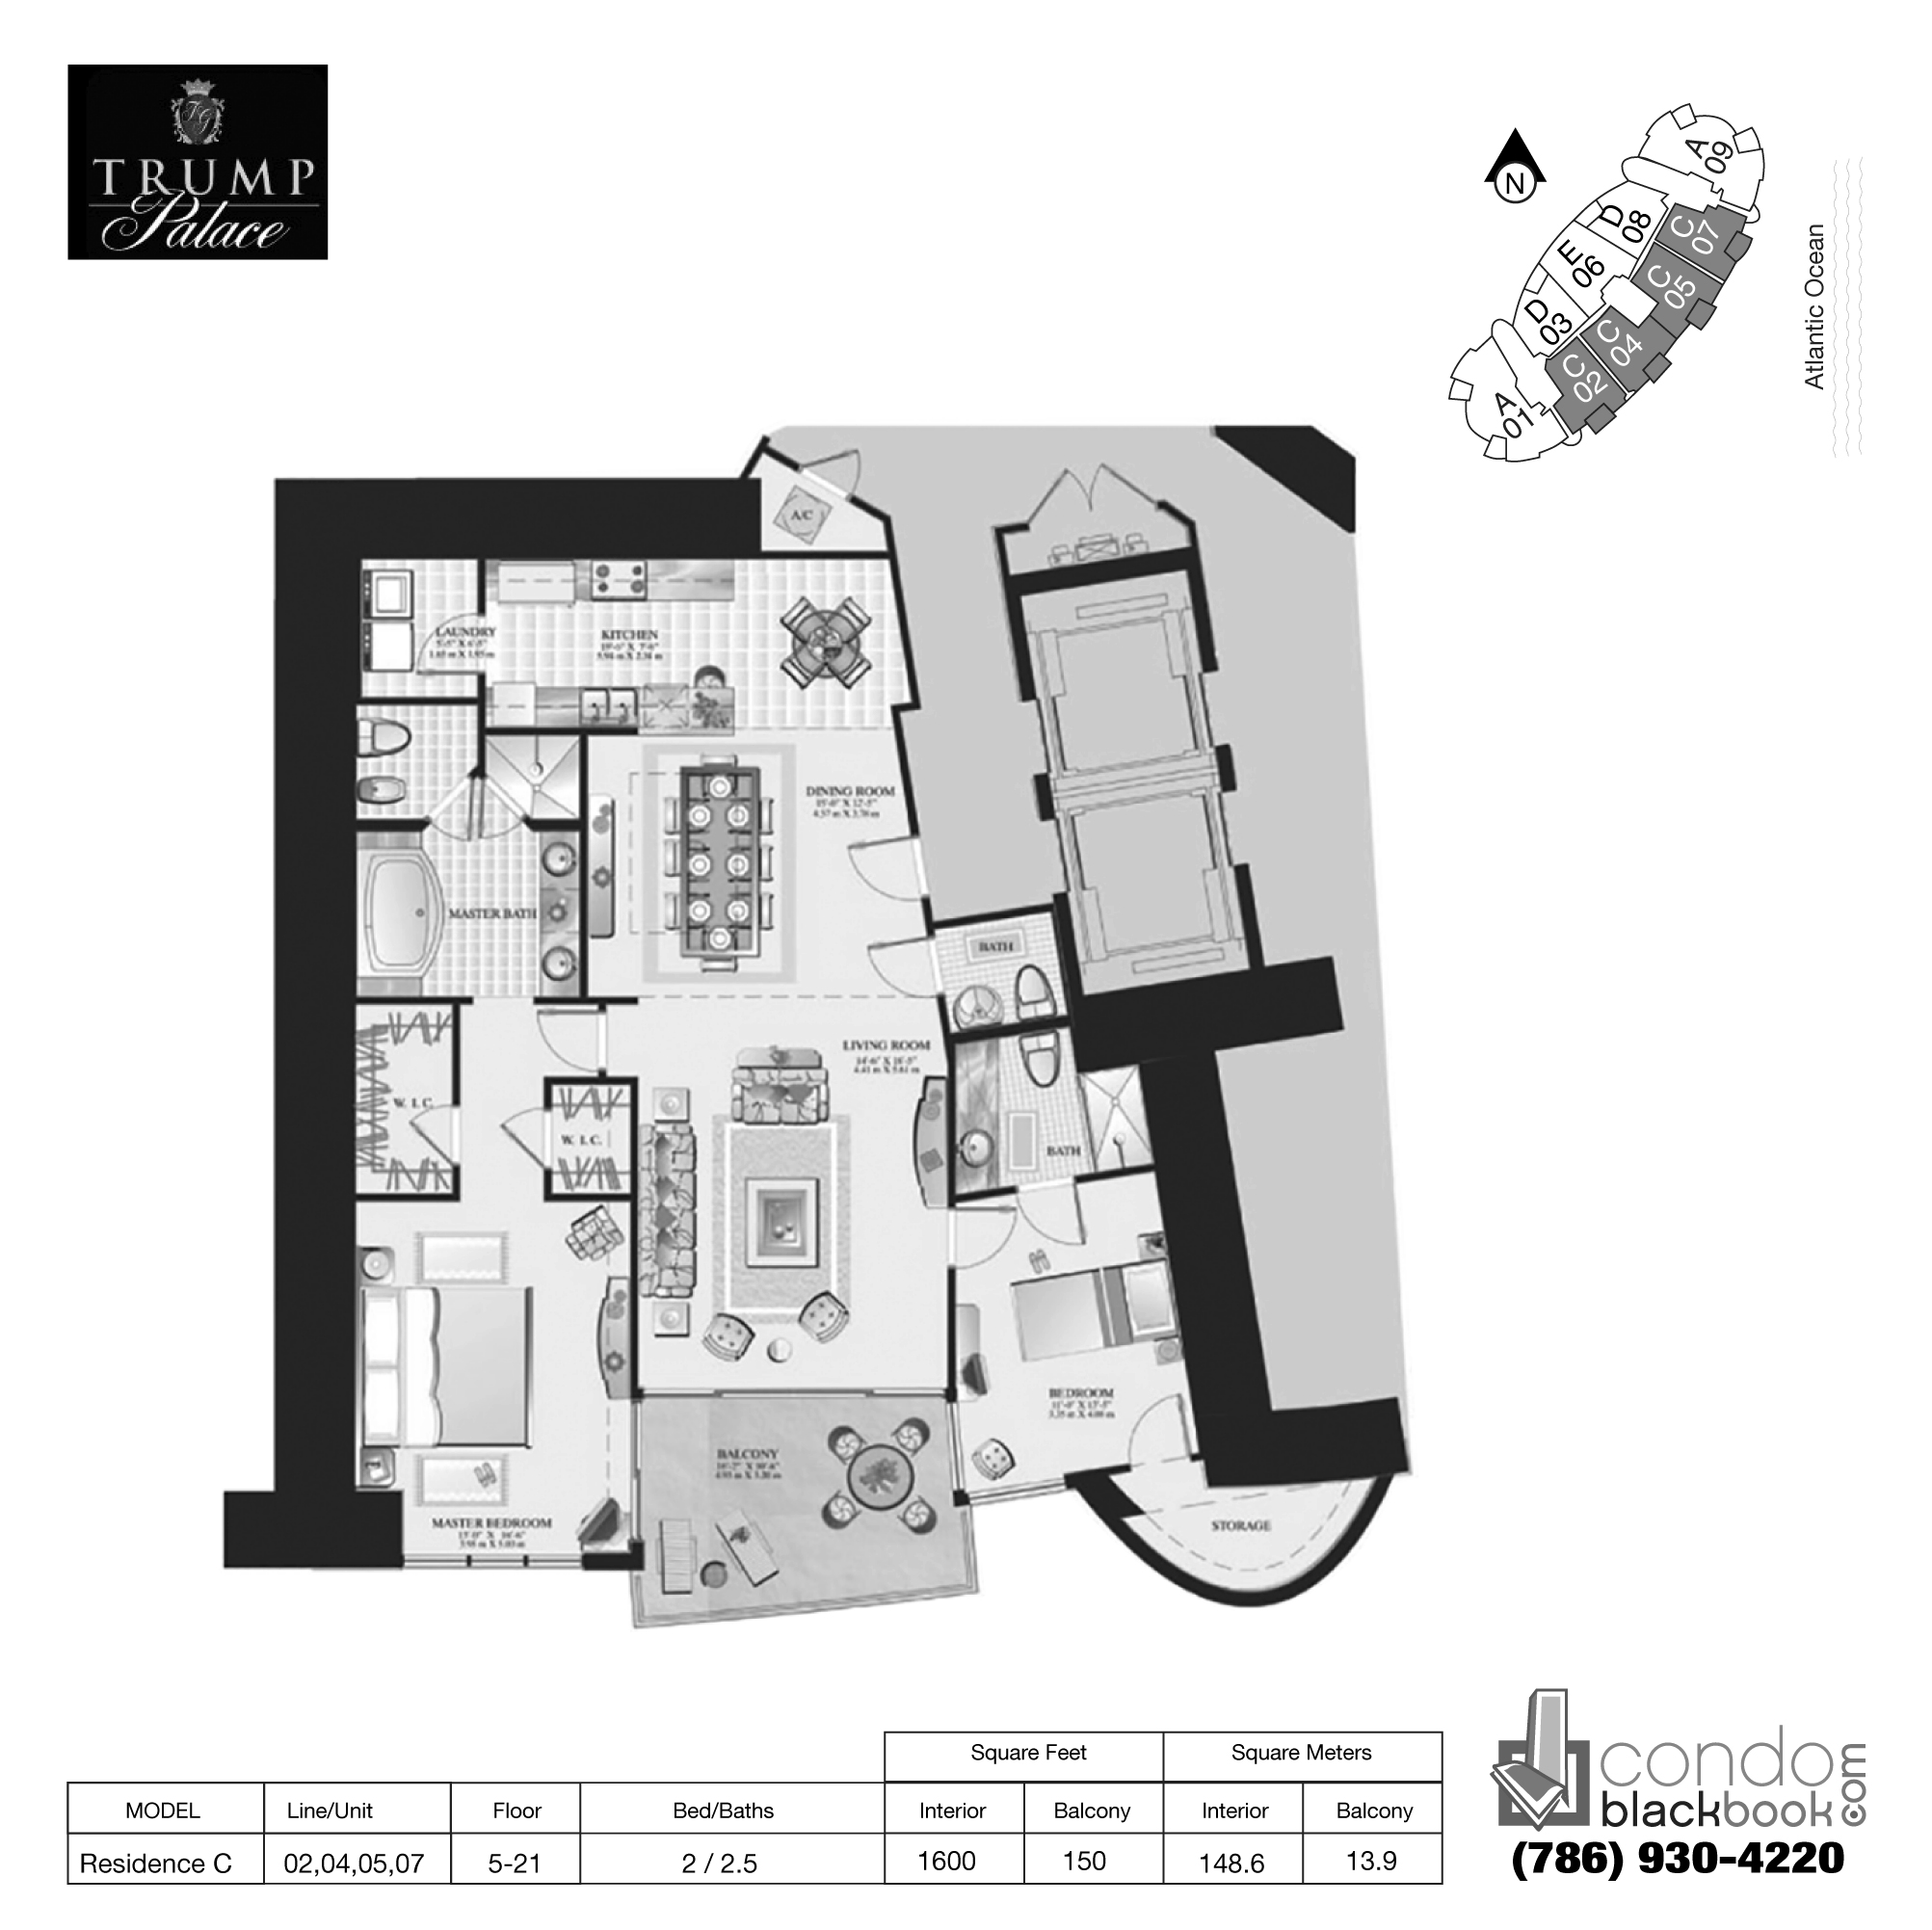 Trump palace unit 805 condo for rent in sunny isles beach for Floor plan book